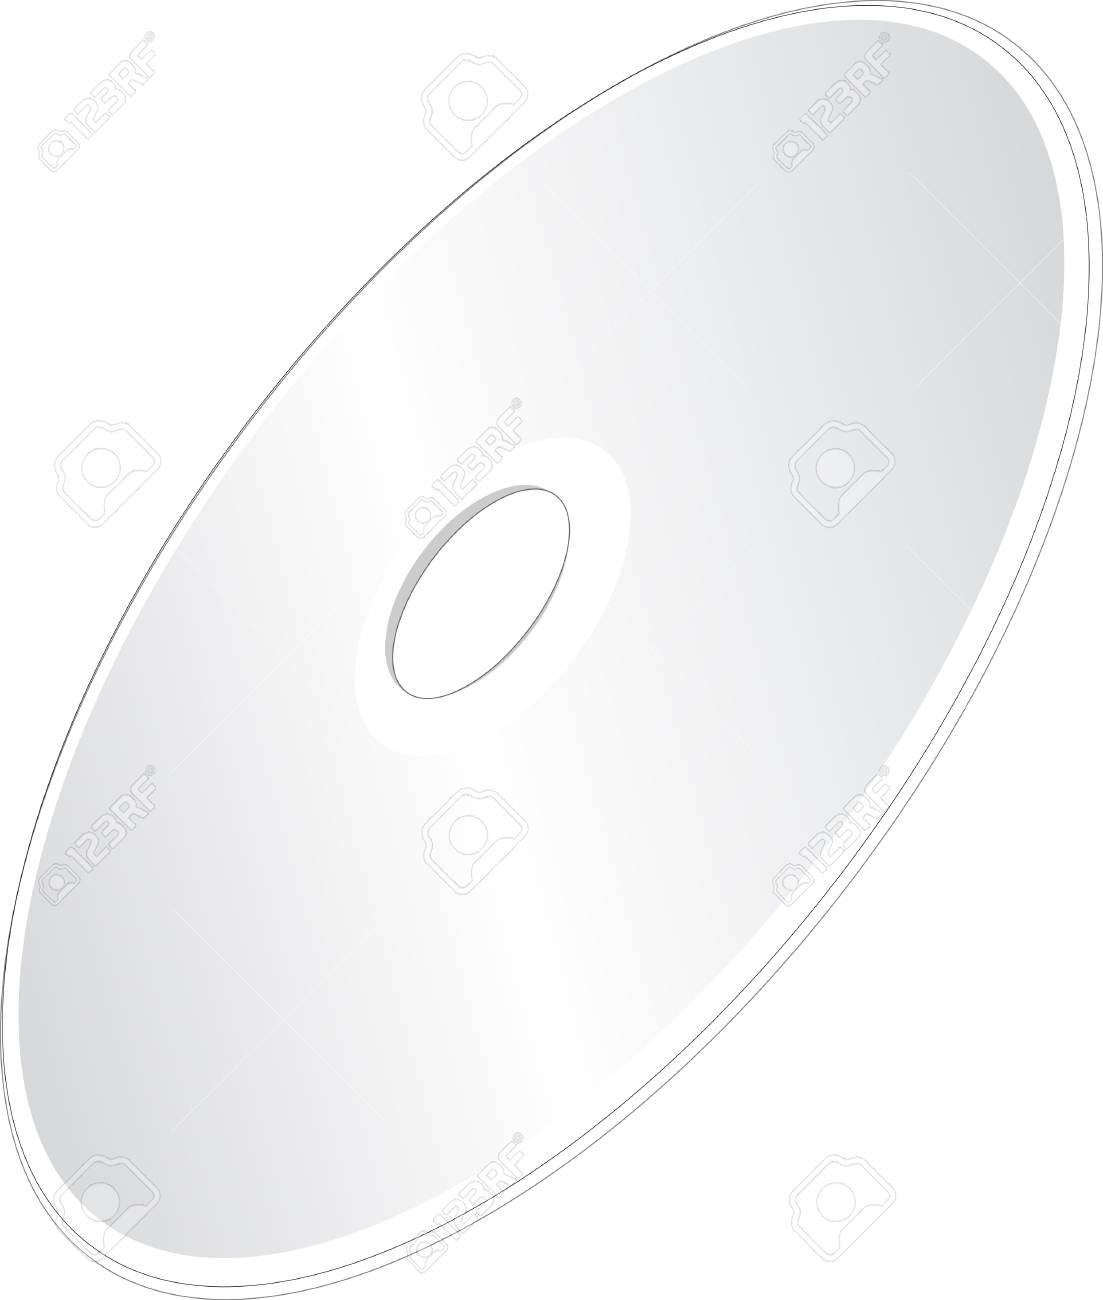 A Shiny Silver Blank CD or DVD Compact Disc on White Background Stock Photo - 17039916